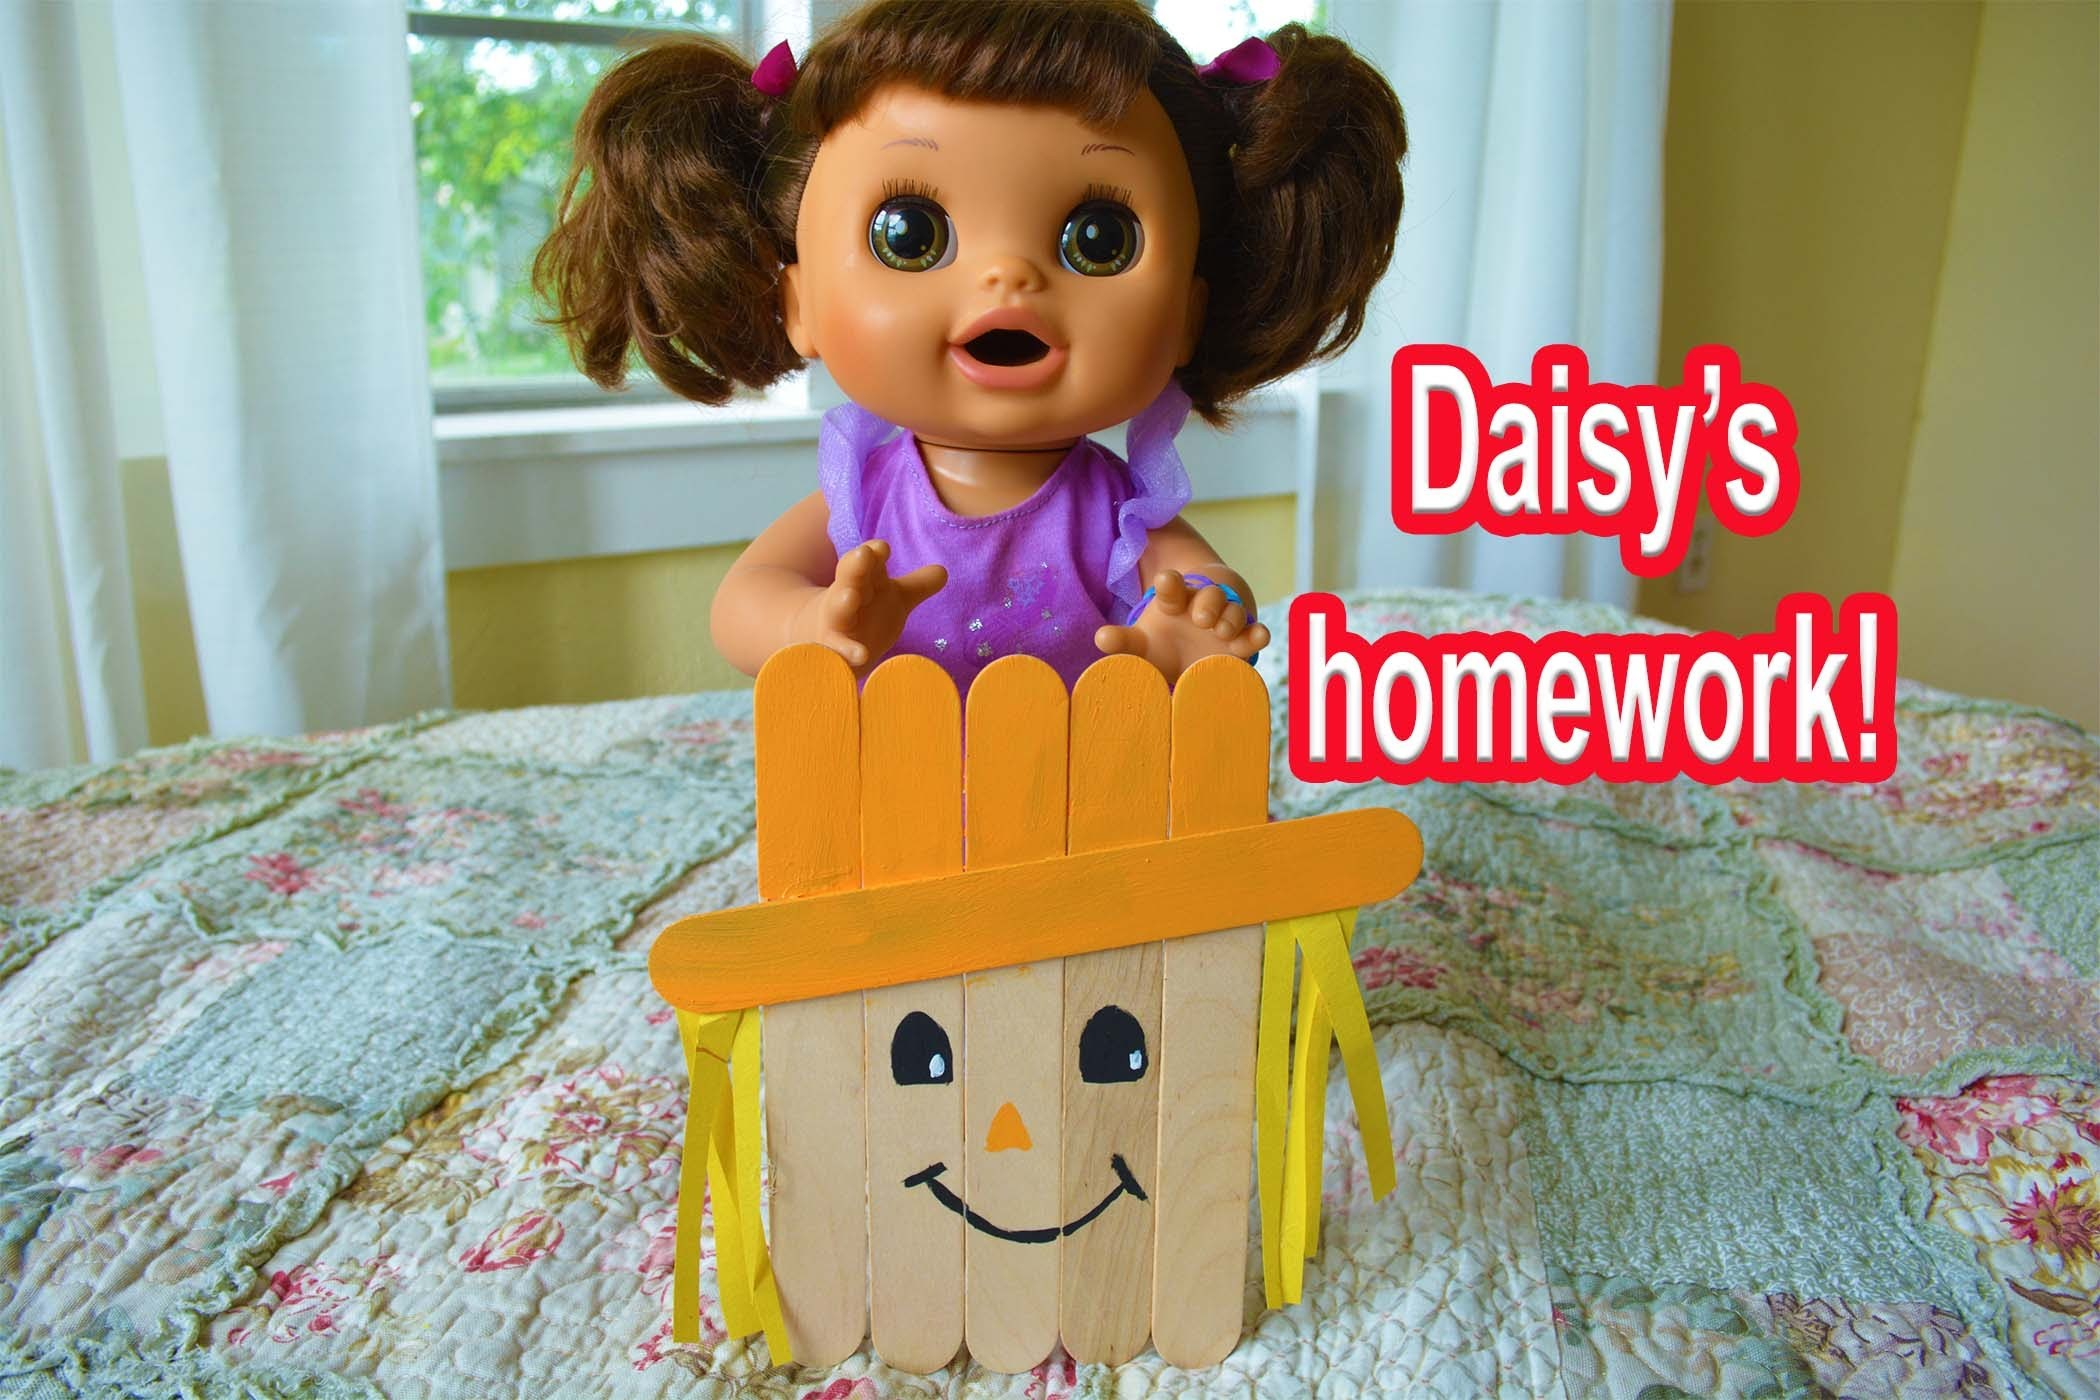 Baby Alive School- Daisy Makes A Scarecrow For The Fall Festival! - baby alive goes to school